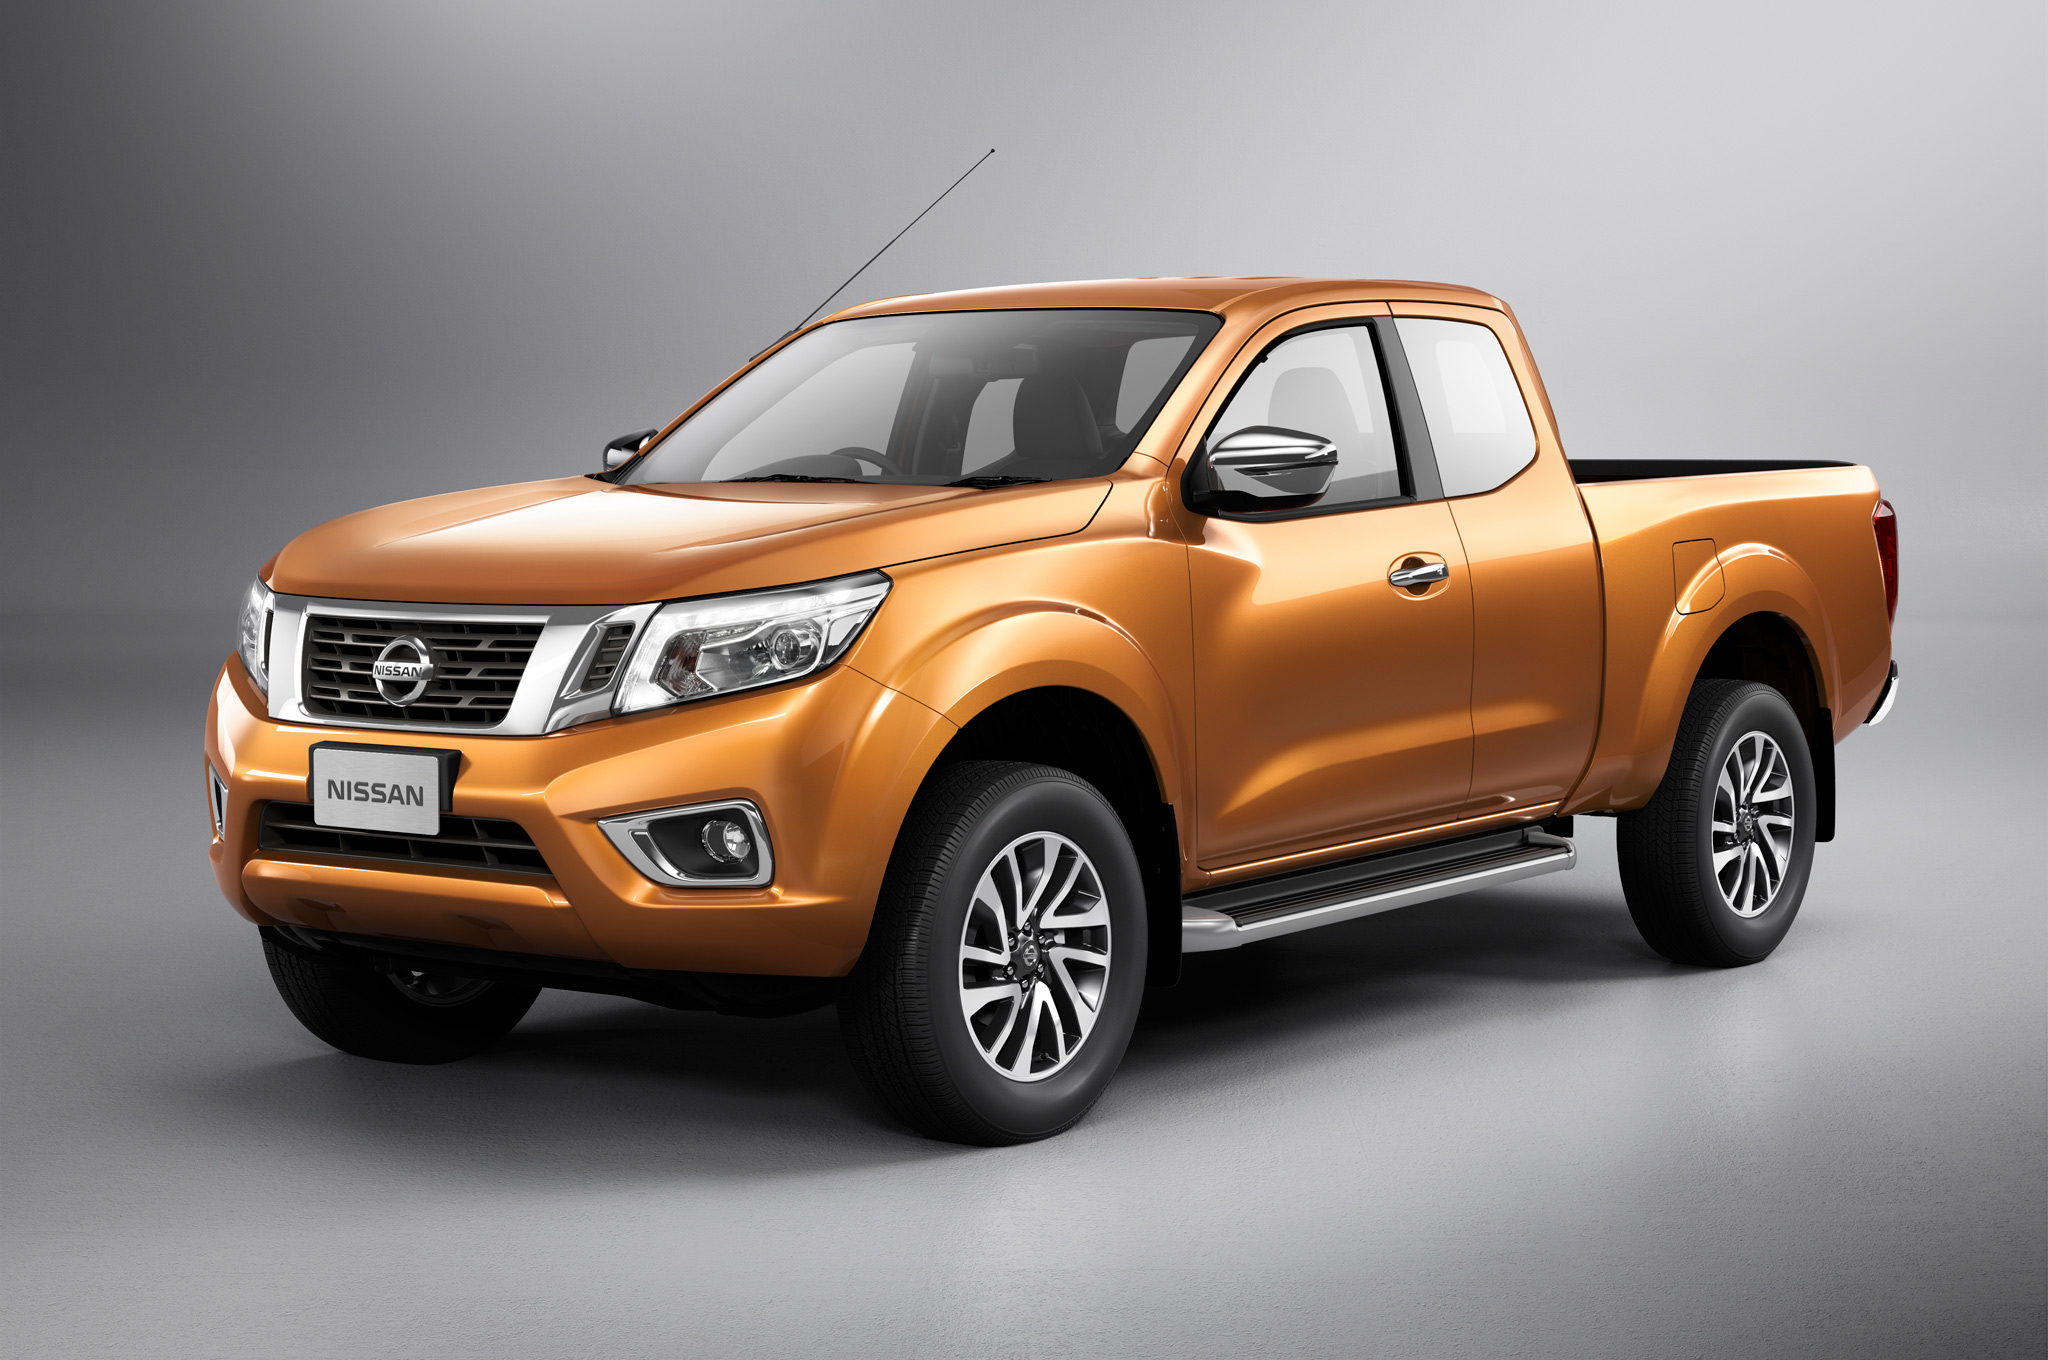 Nissan-NP300-Navara-12th-gen-King-Cab-front-side-view